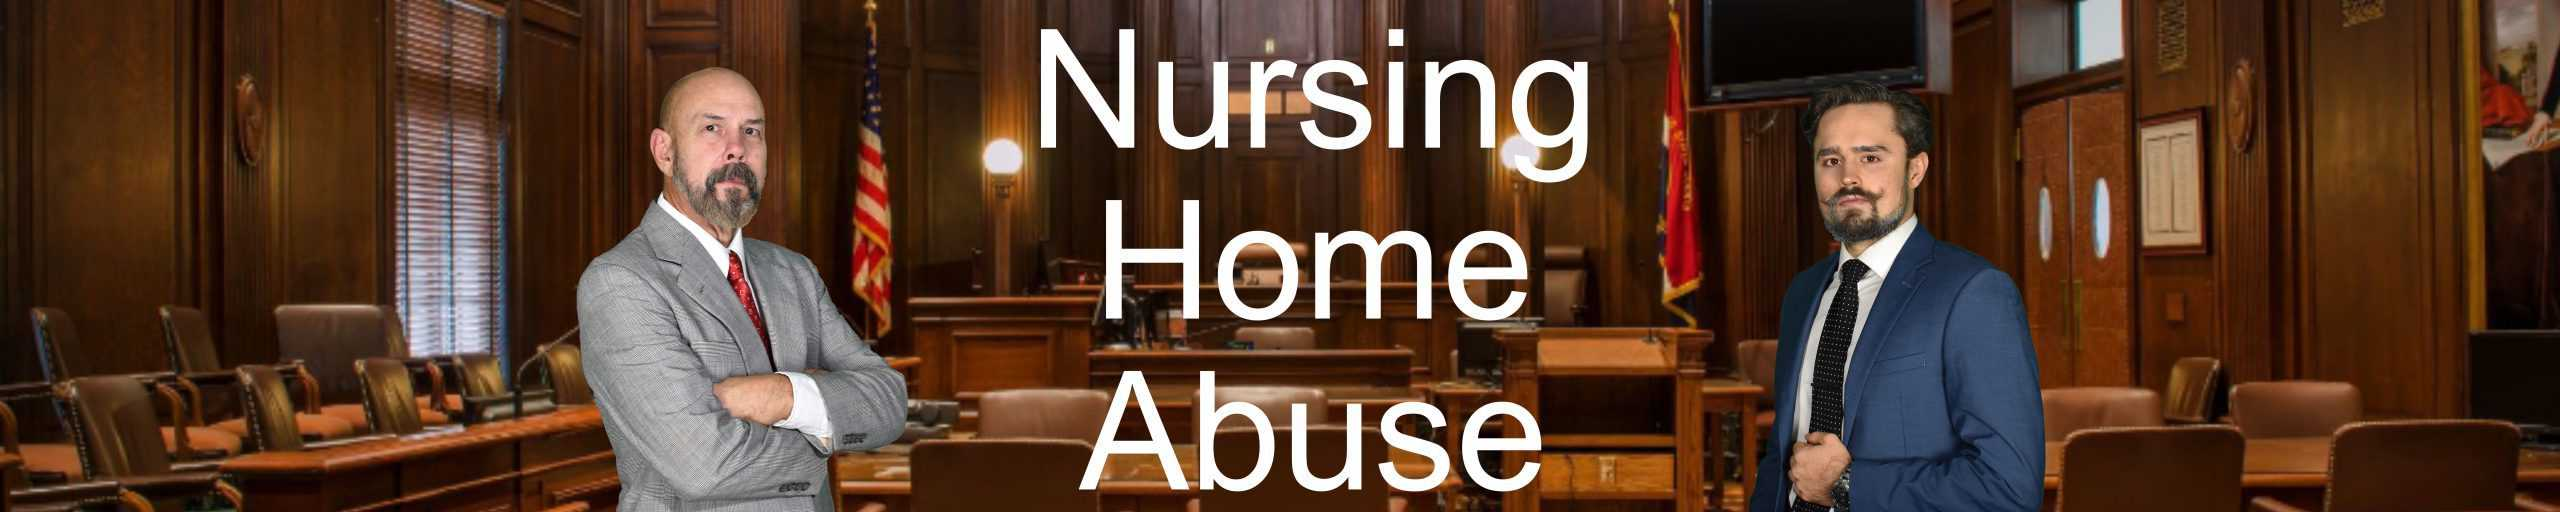 Nursing-Home-Abuse-Personal-Injury-Attorney-Lawyer-Nurse-Negligence-Death